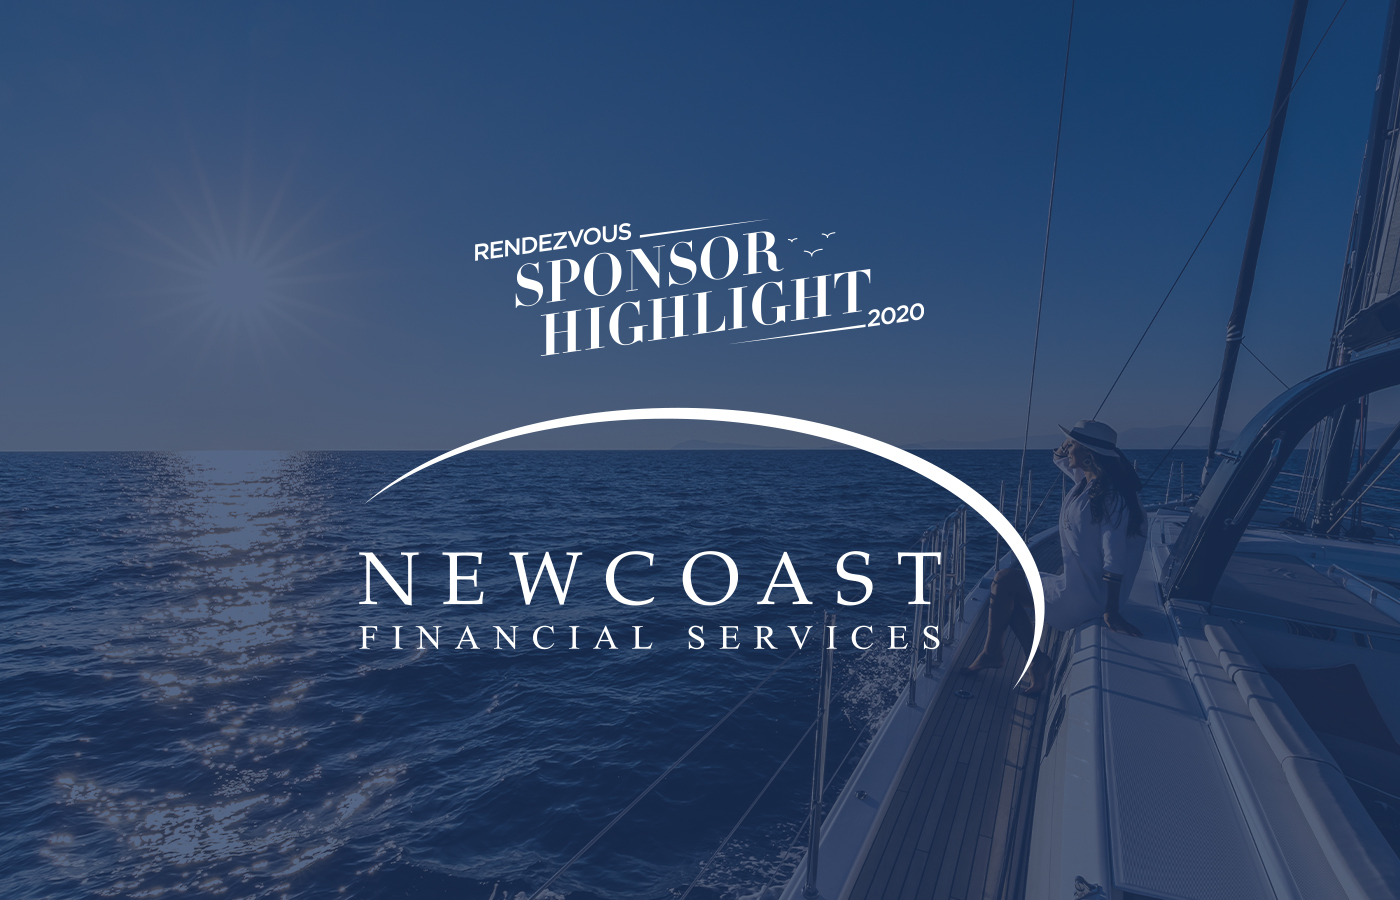 Rendezvous Sponsor Highlight: Newcoast Financial Services